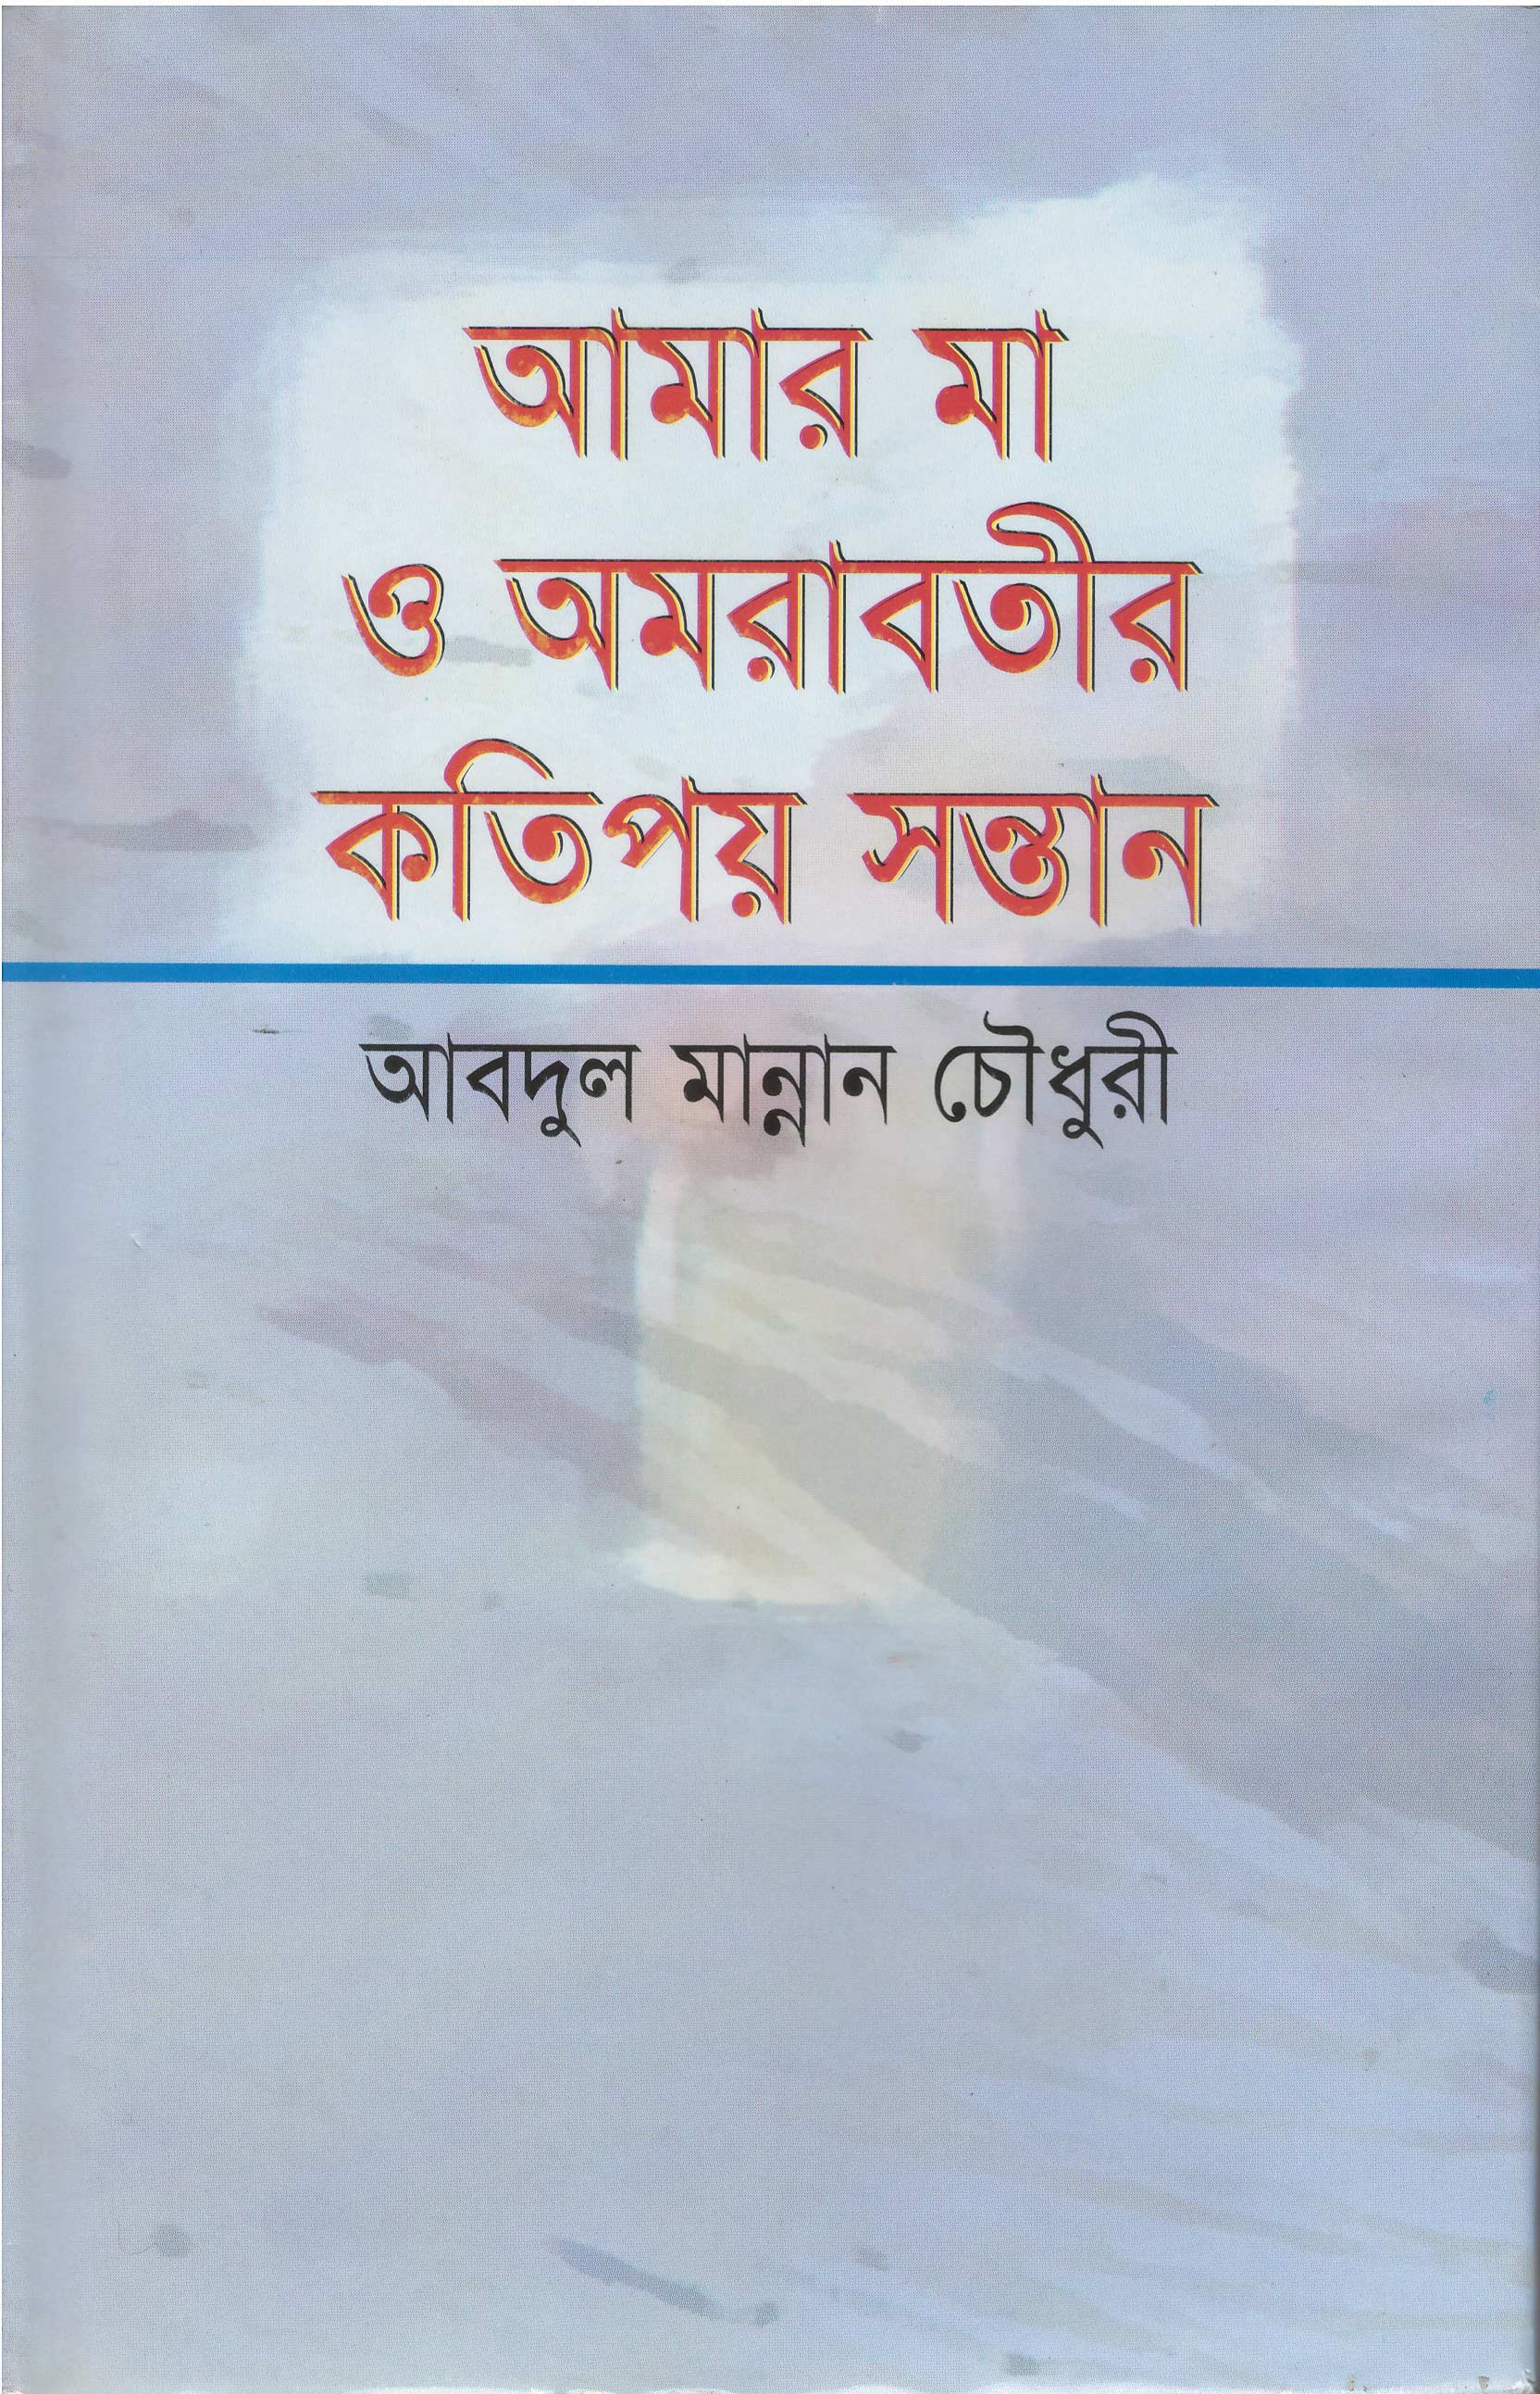 World University Vice Chancellor Book Amar Ma O Amrabotir Kotipoy Sontan